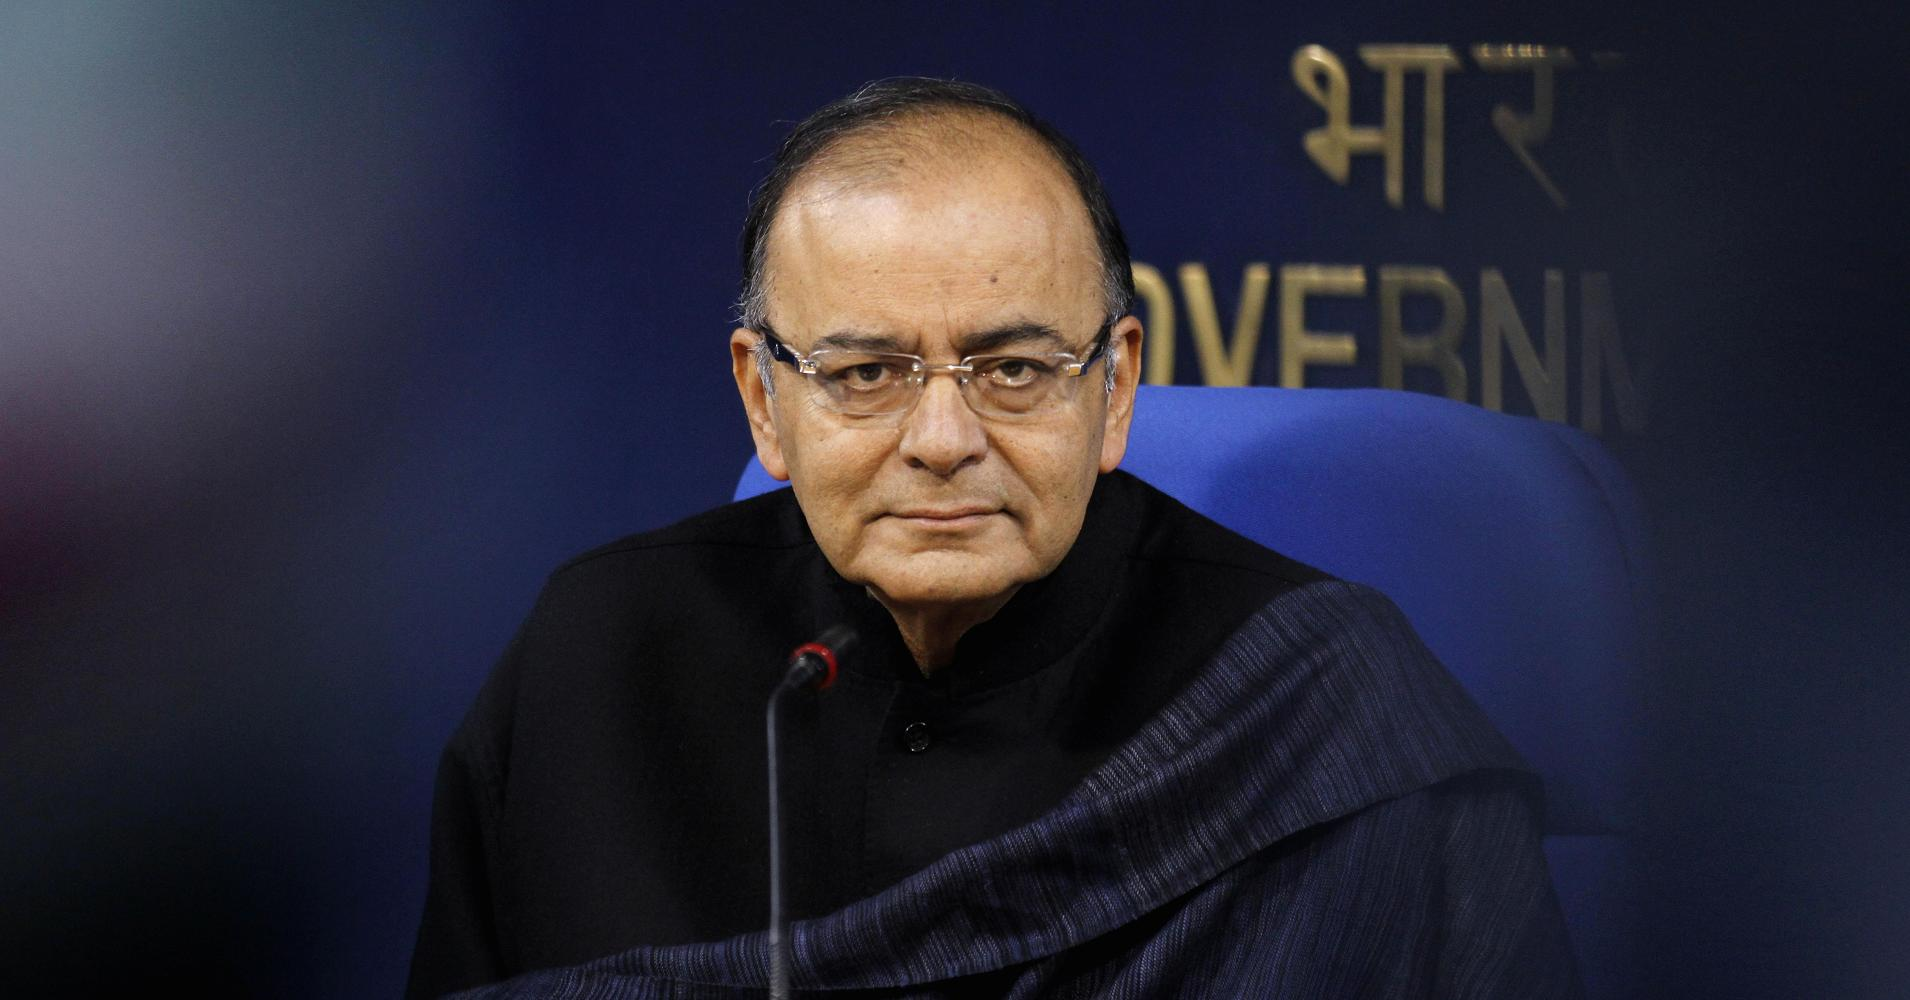 Indian Economy Growth Depend on Good Monsoon, Arun Jaitley